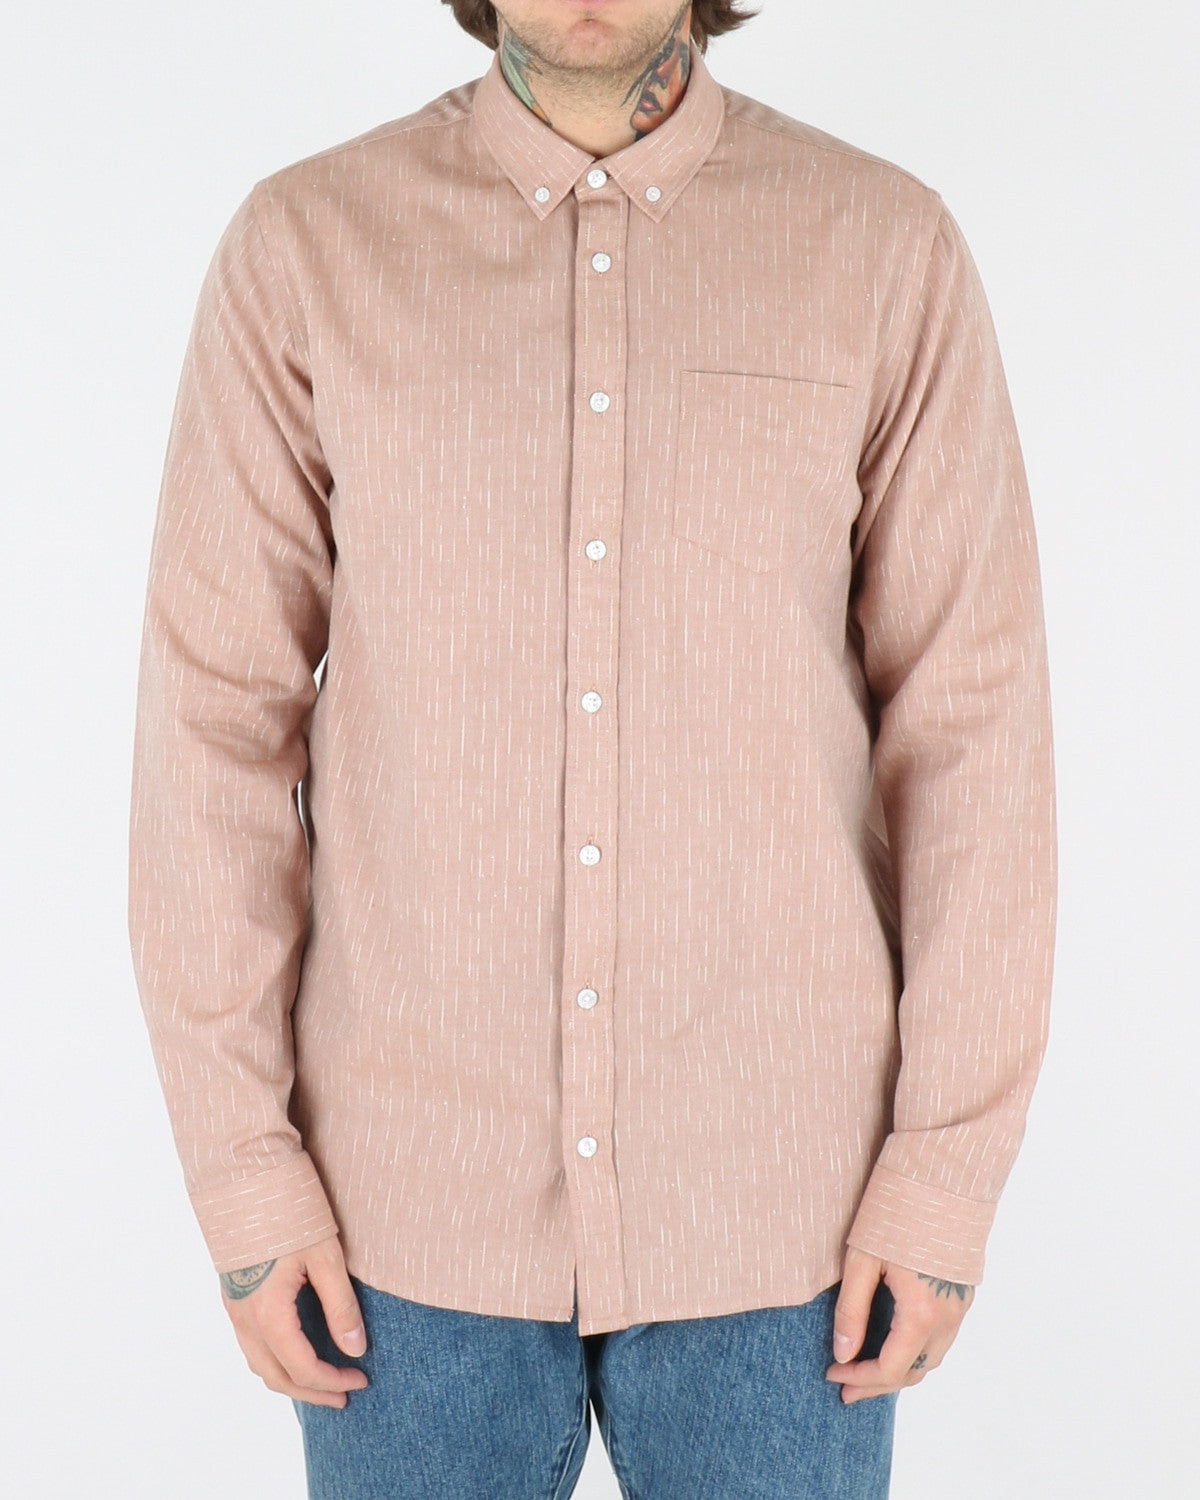 libertine libertine_hunter shirt_ochre_view_1_3